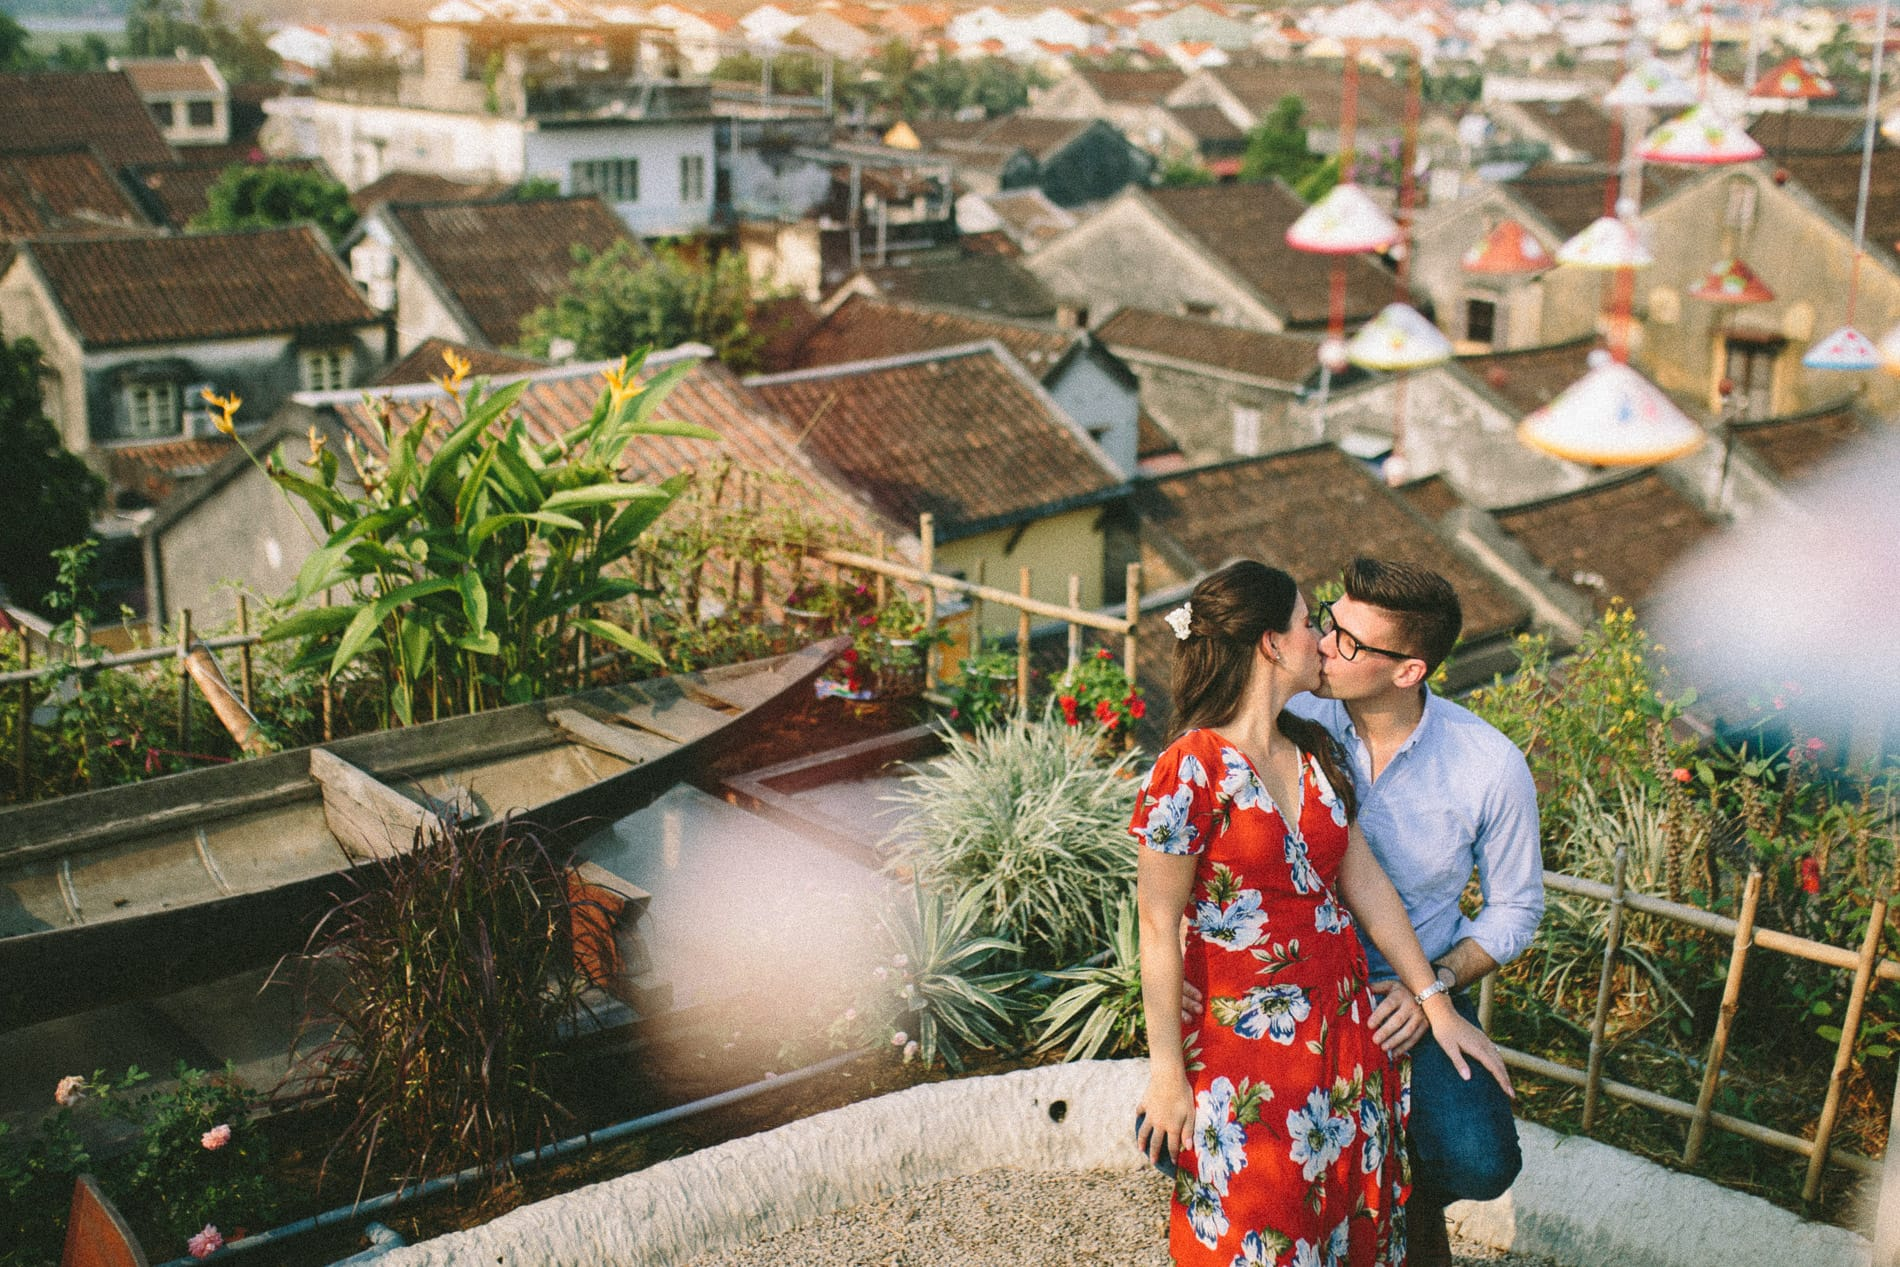 Hoi An is perfect for wedding photography